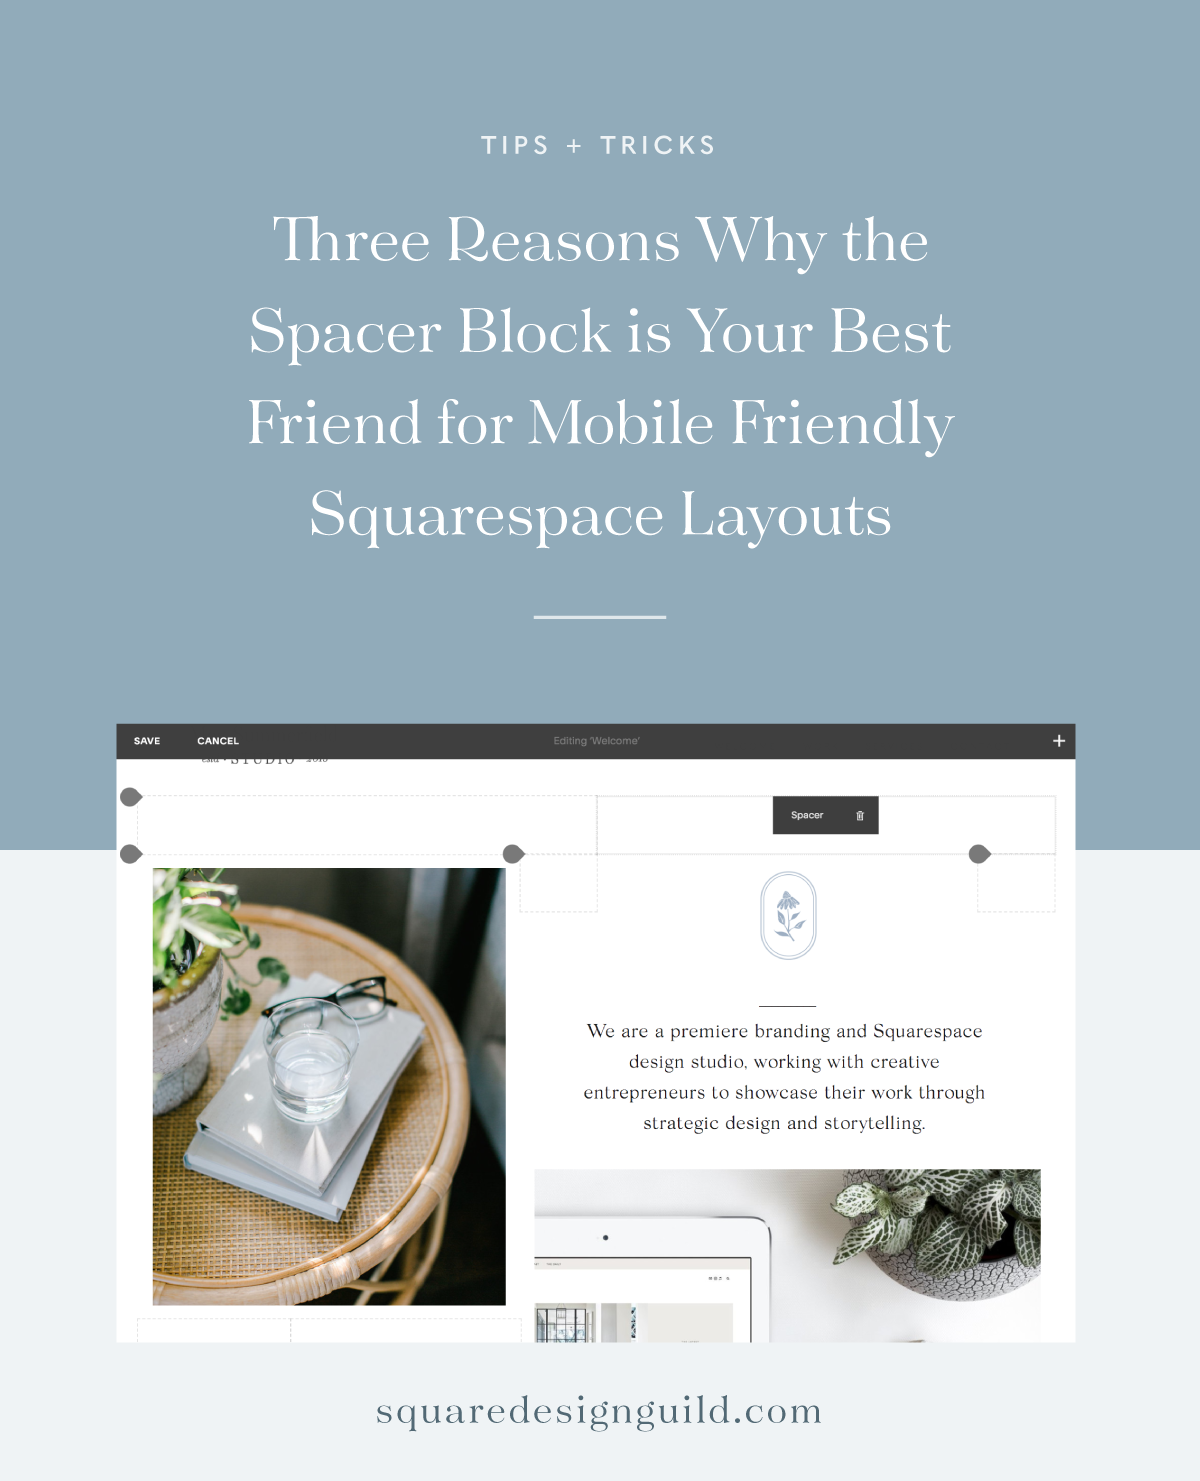 SpacerBlock for Mobile Friendly Squarespace Layouts.png